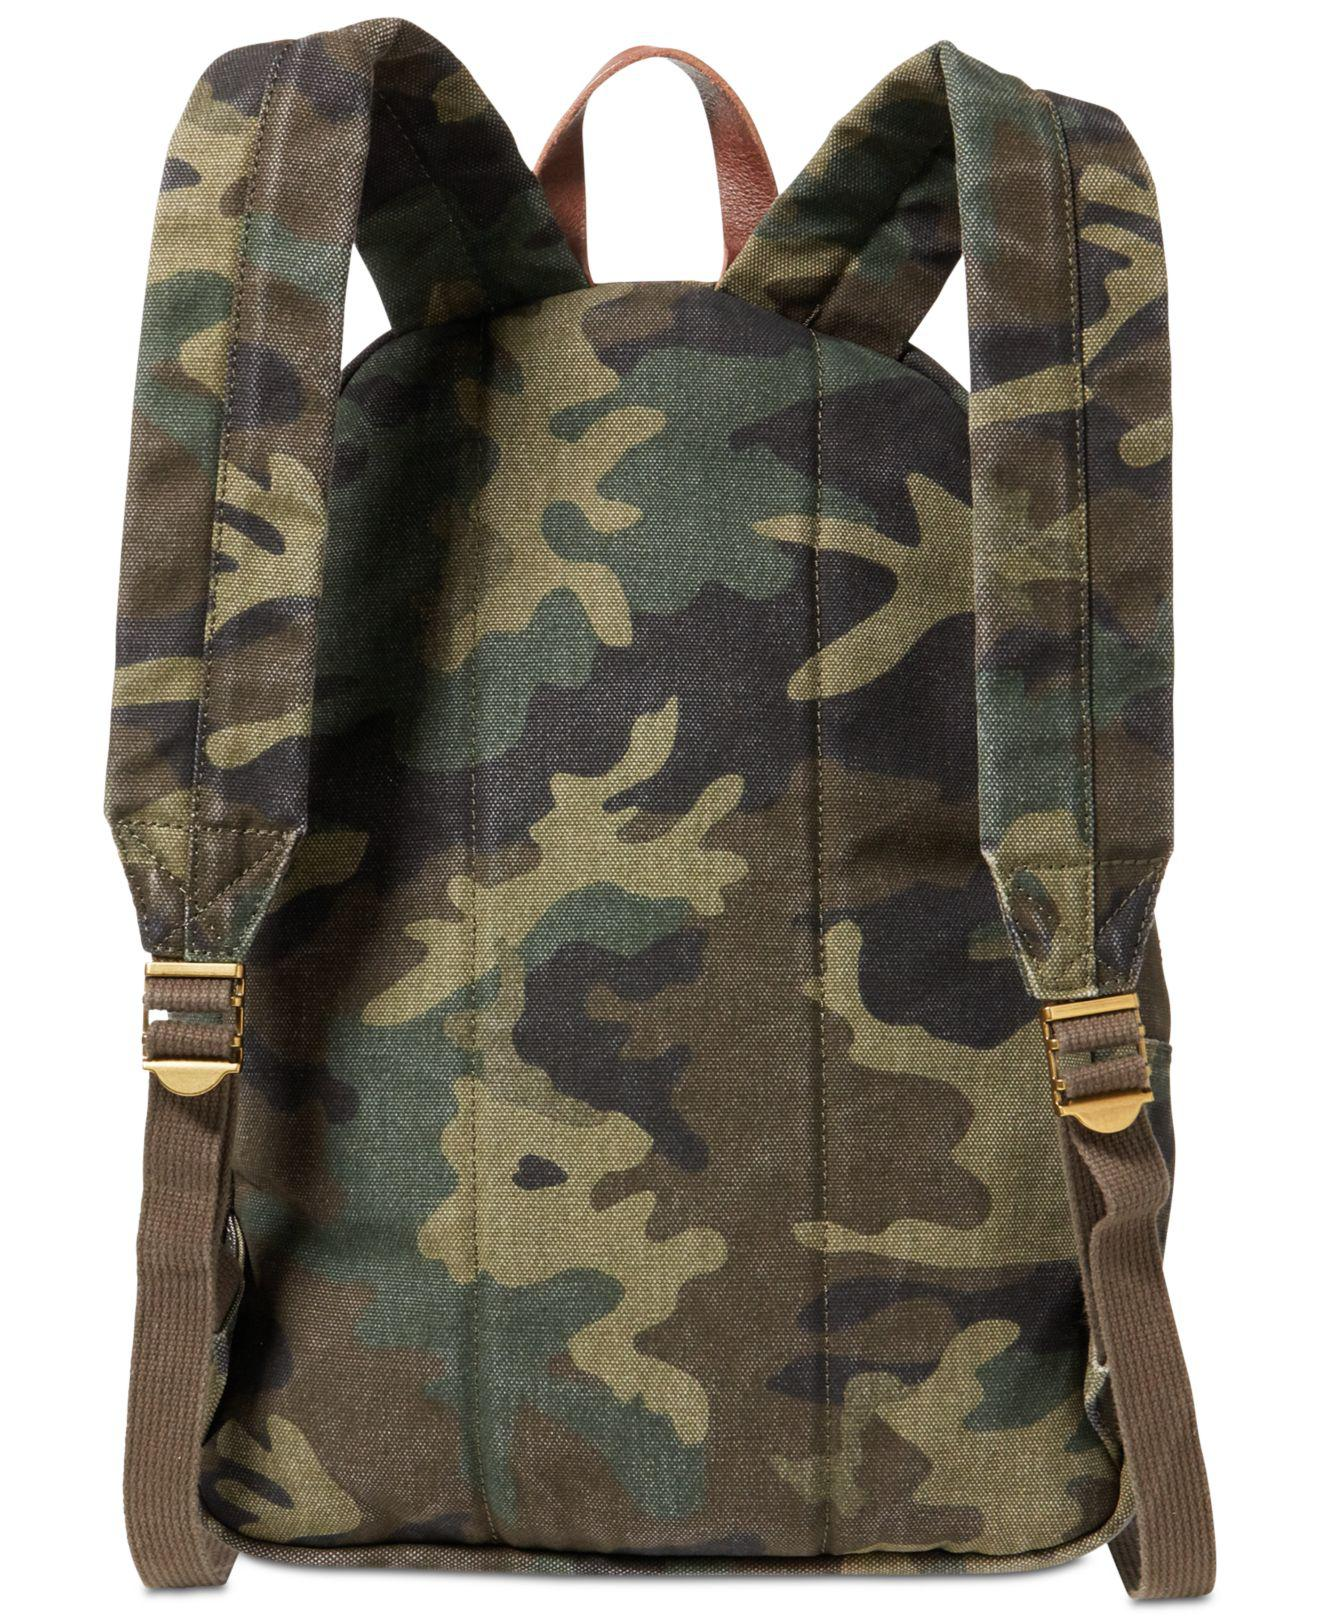 203492108b Lyst - Polo Ralph Lauren Camouflage Canvas Backpack for Men